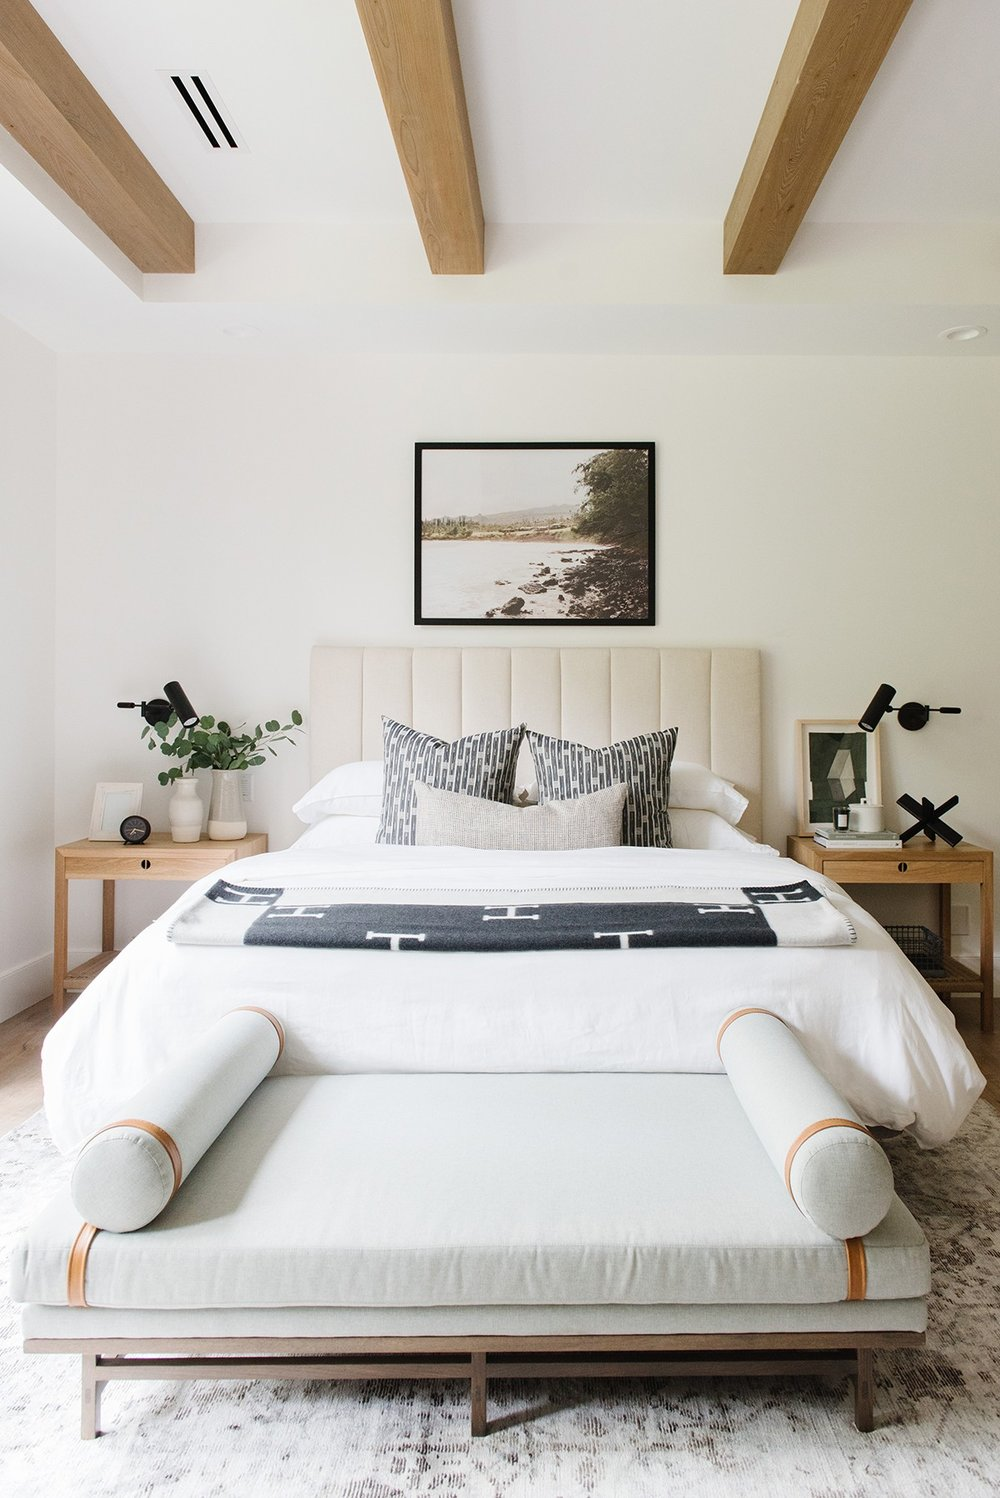 How to Style a Bed: Our Guide